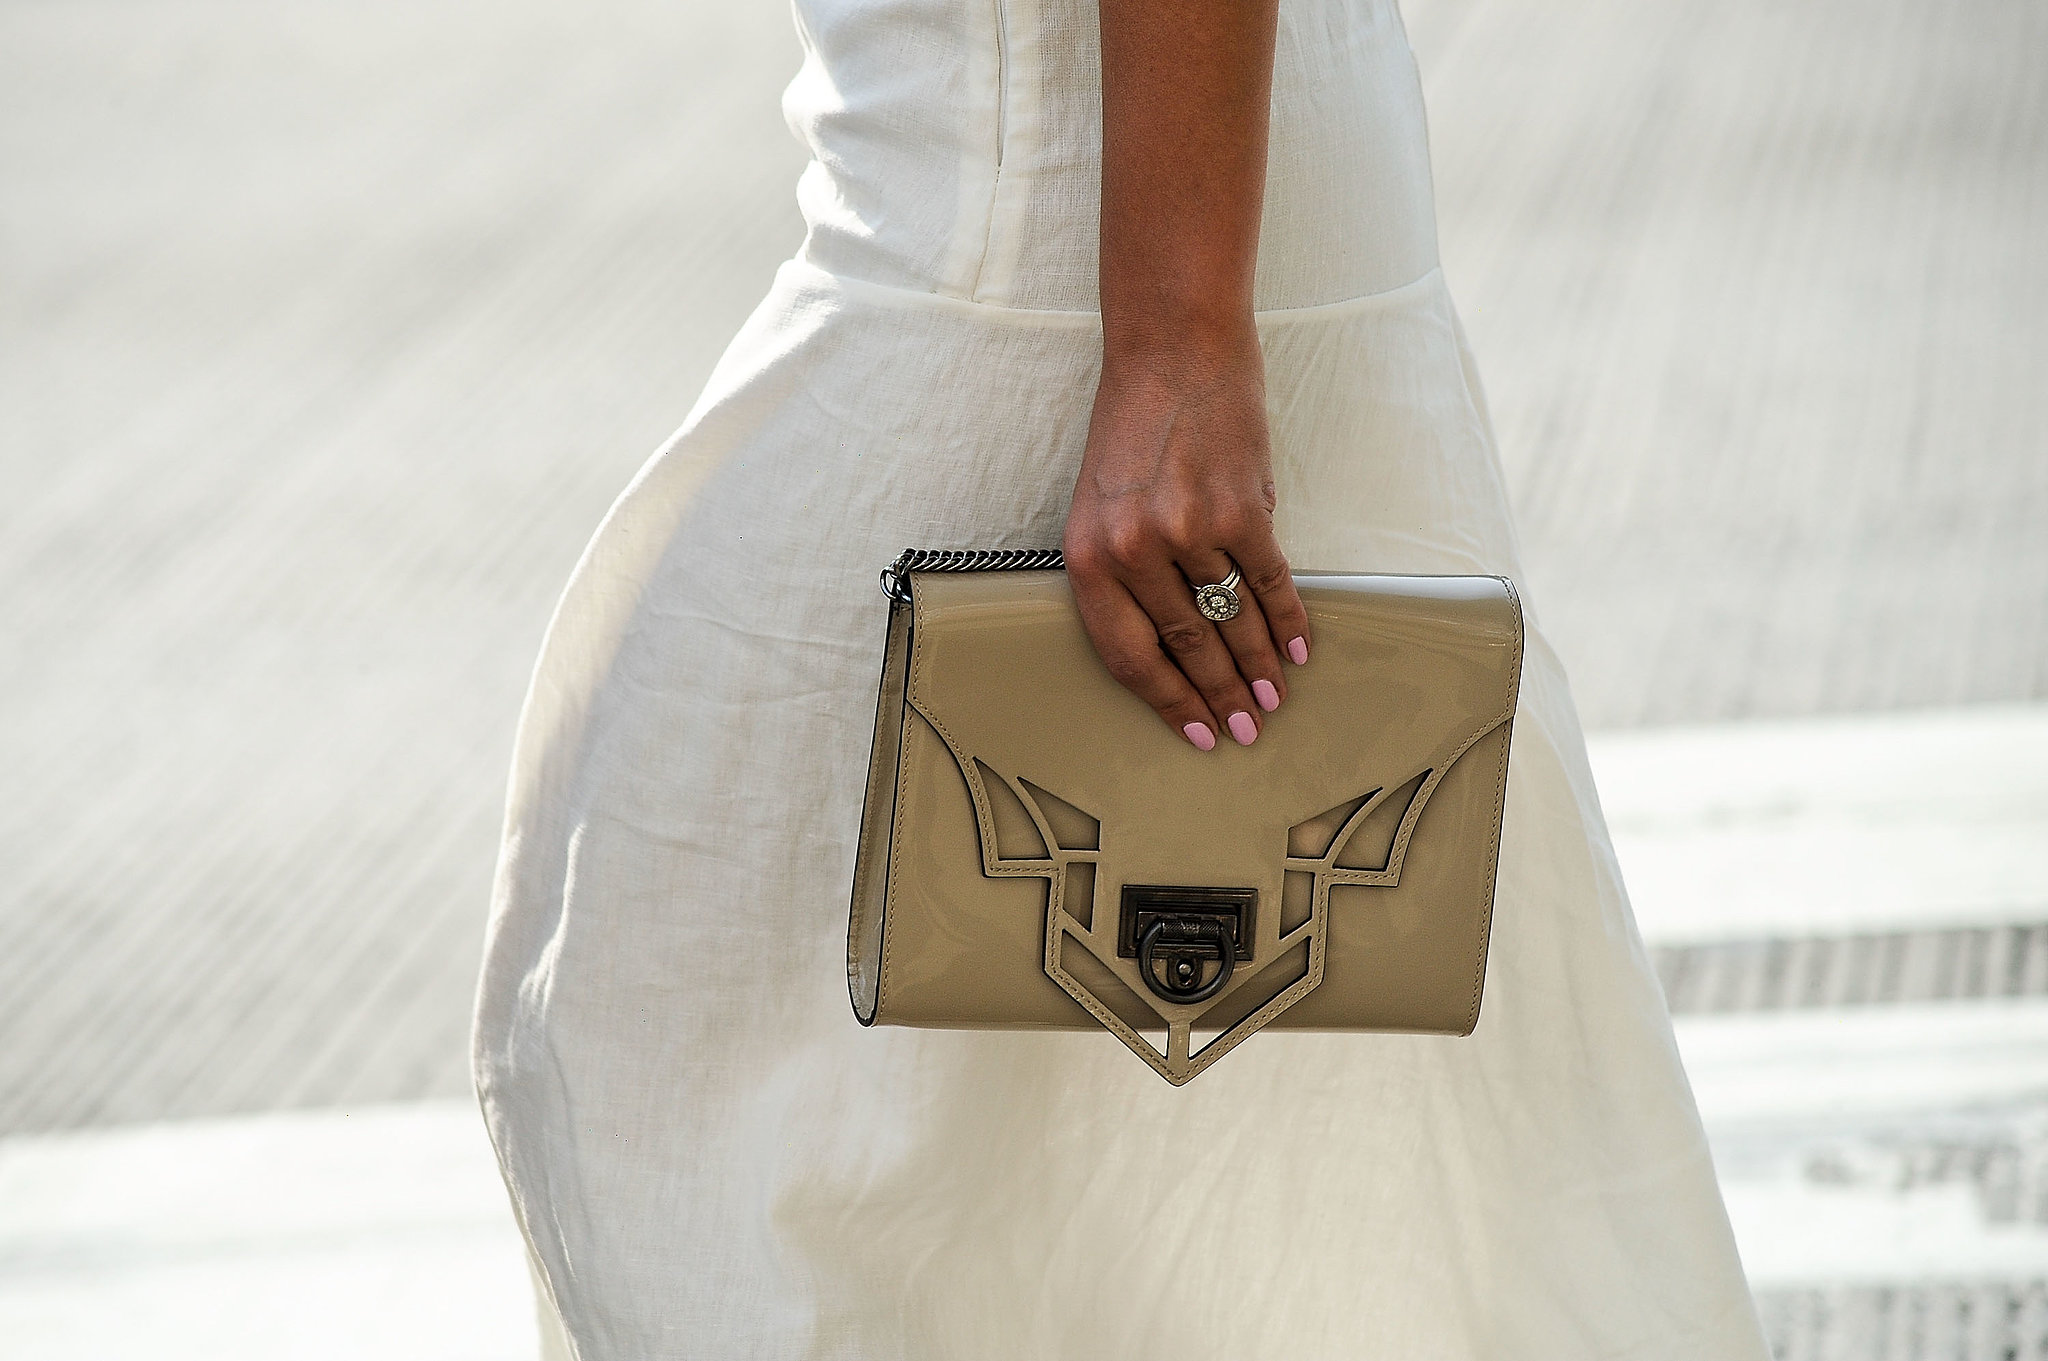 An understated clutch paired perfectly with a simple white dress.